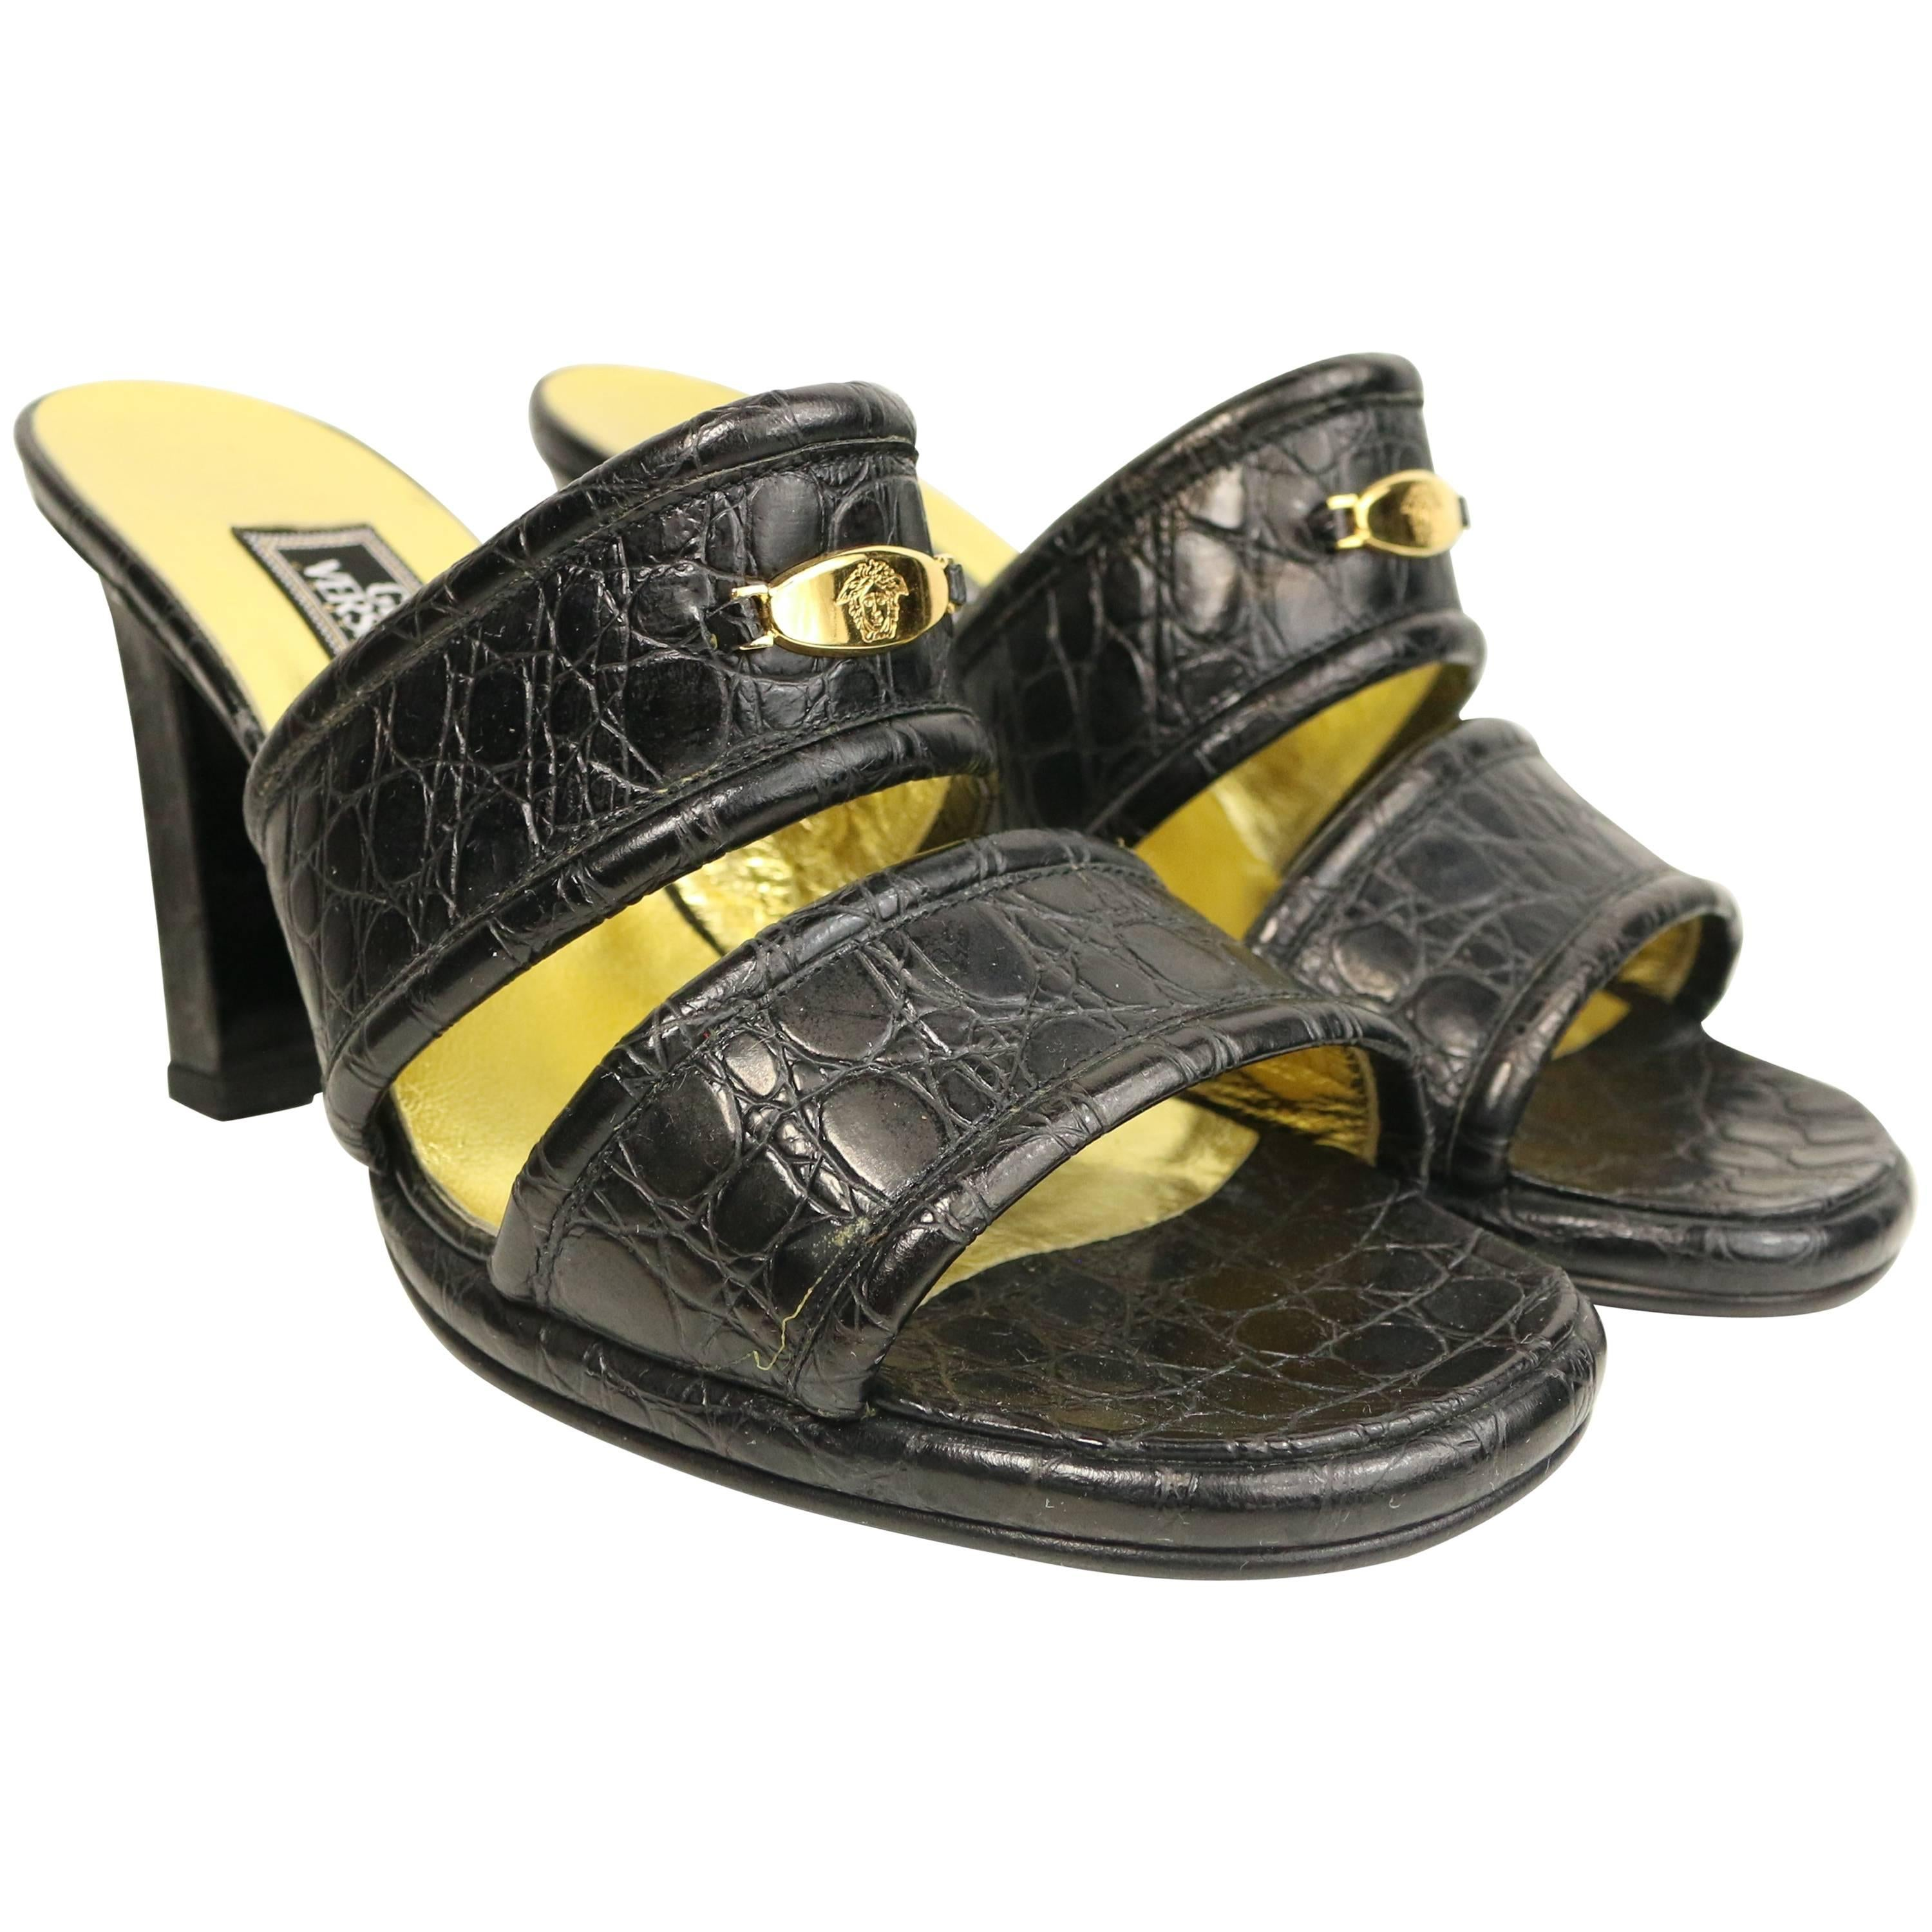 90s Gianni Versace Couture Black Croc Leather Sandals Heels